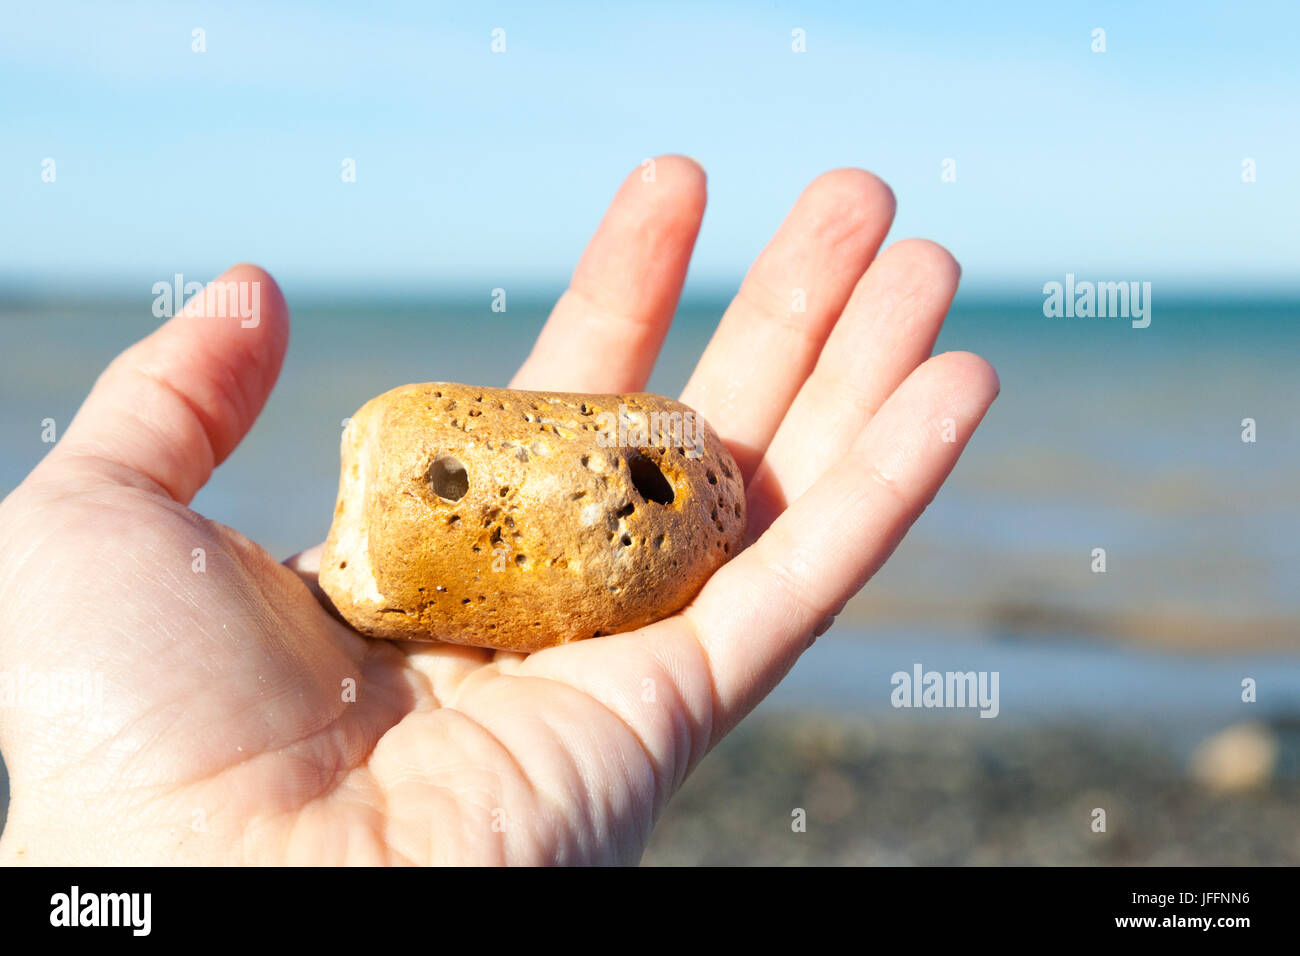 A cute 'pet rock' held in a hand - Stock Image